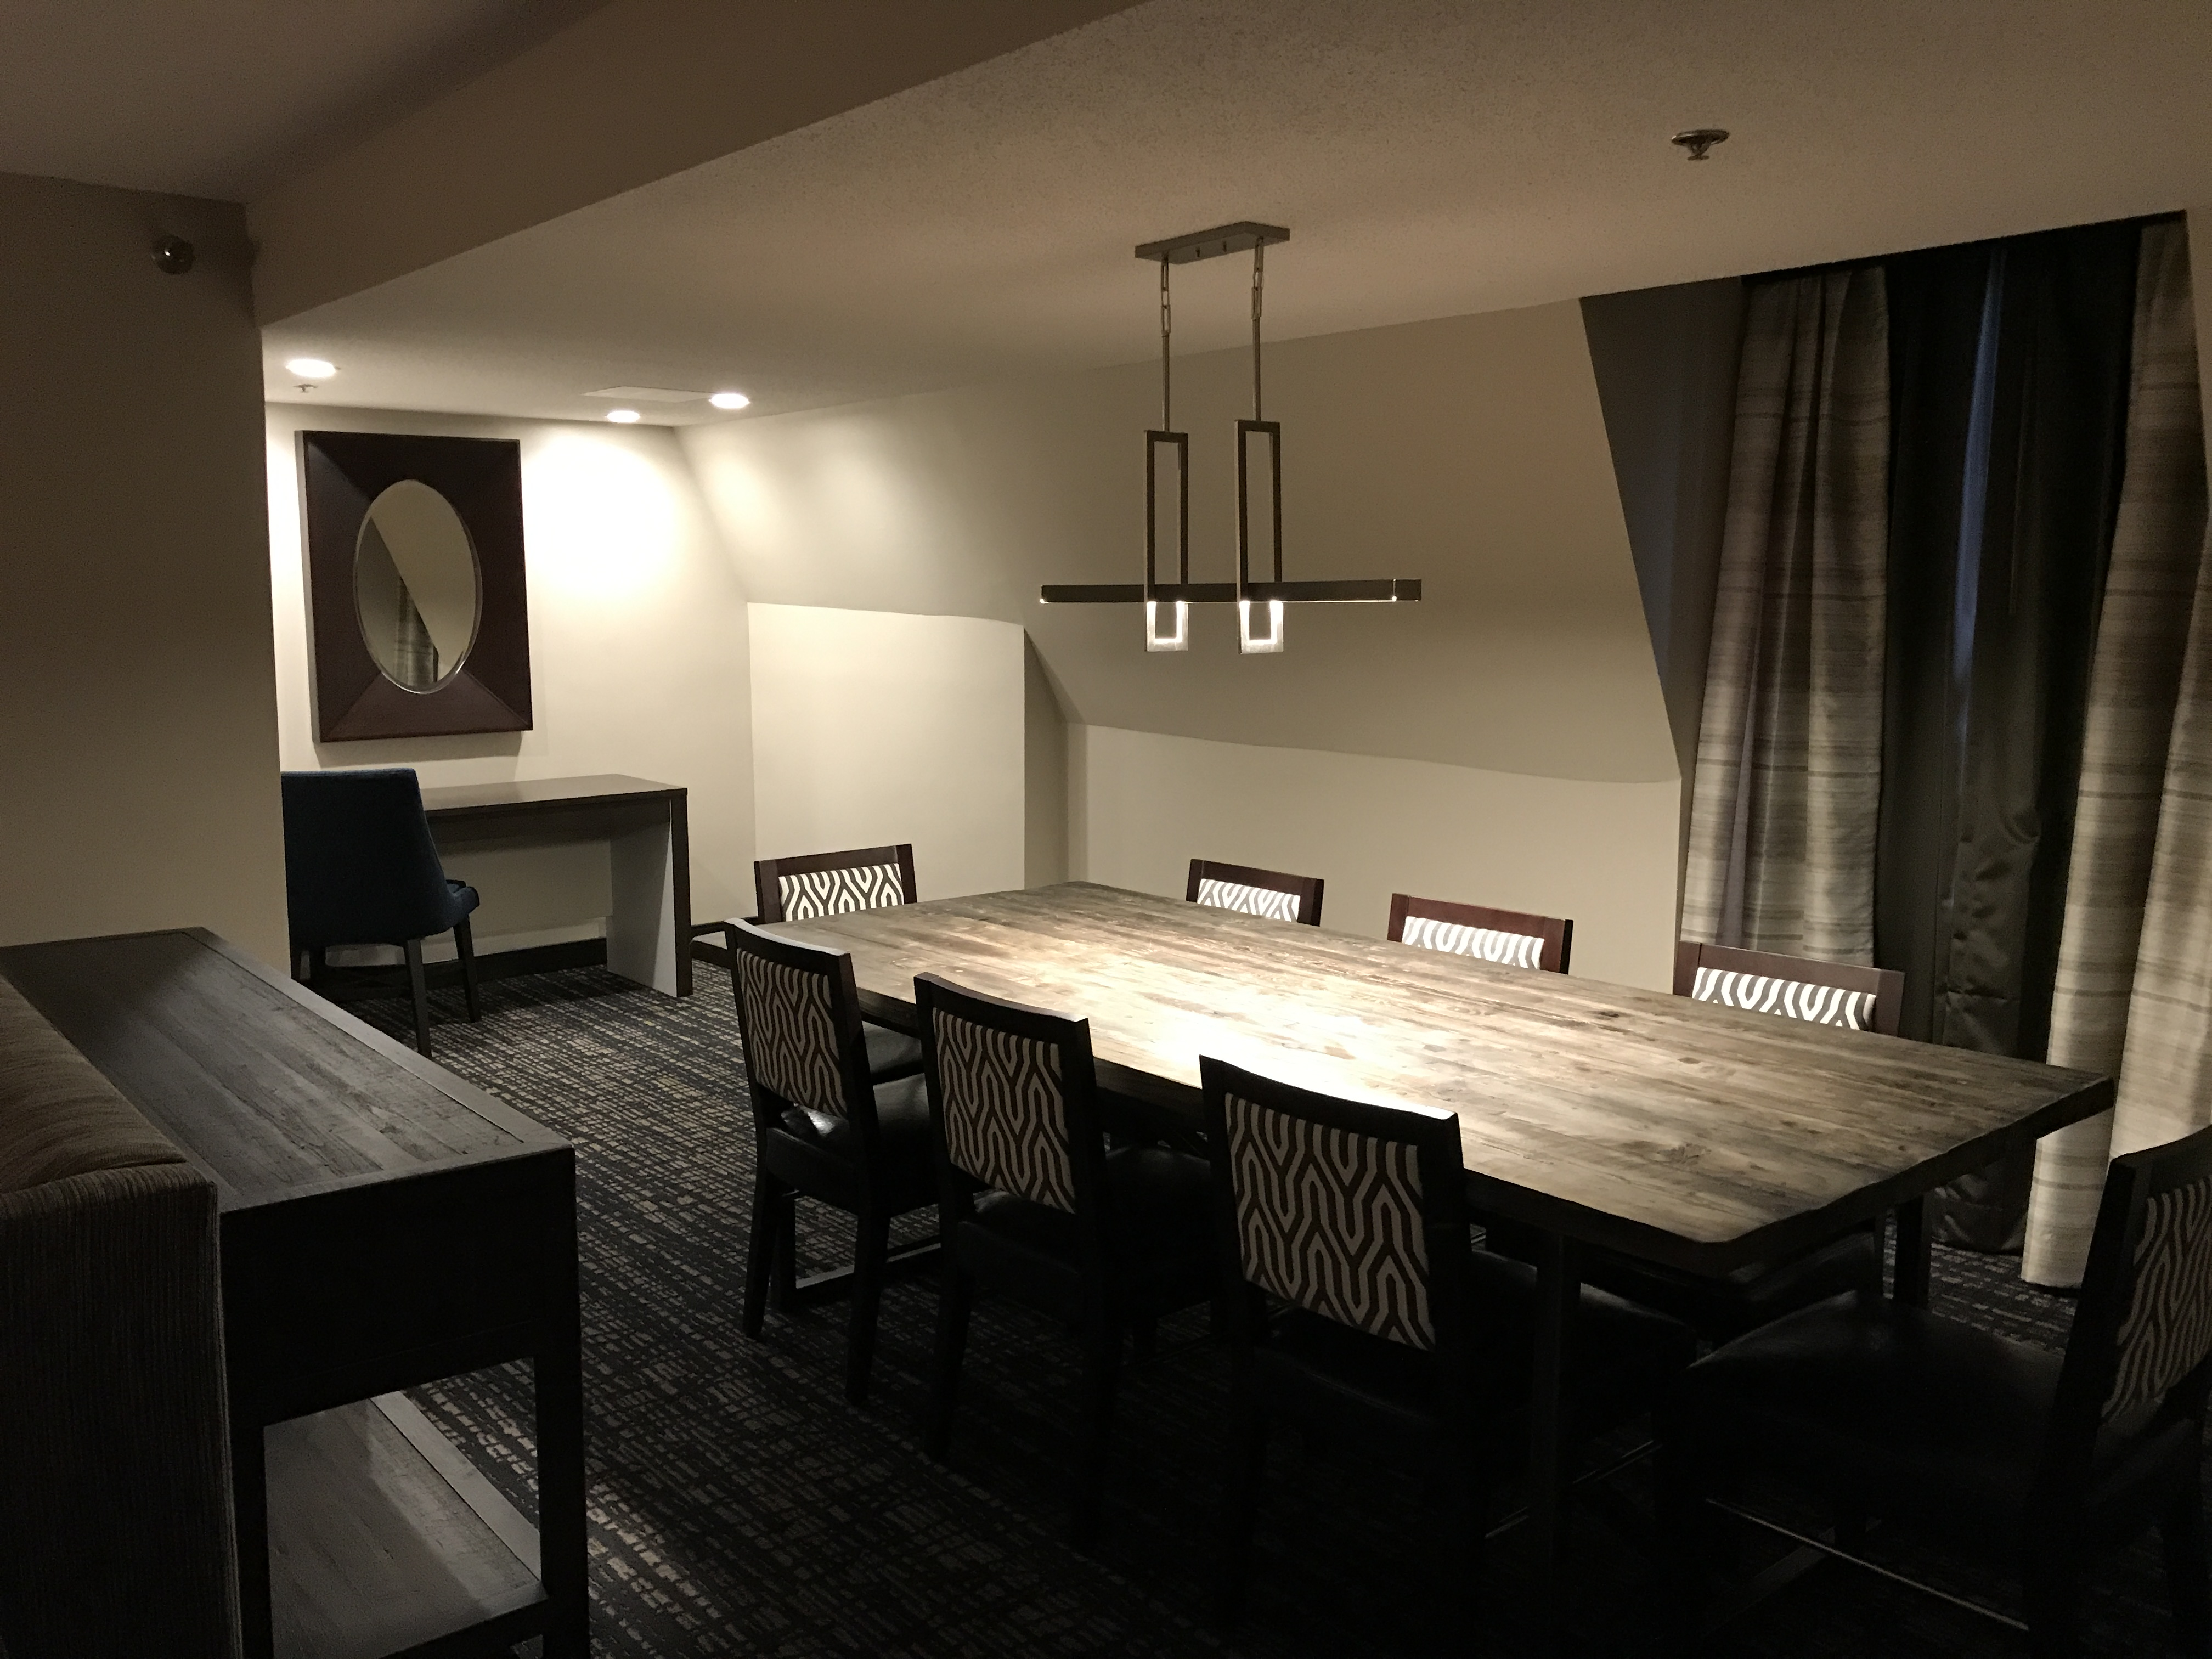 Annapolis Crowne Plaza renovated dining space